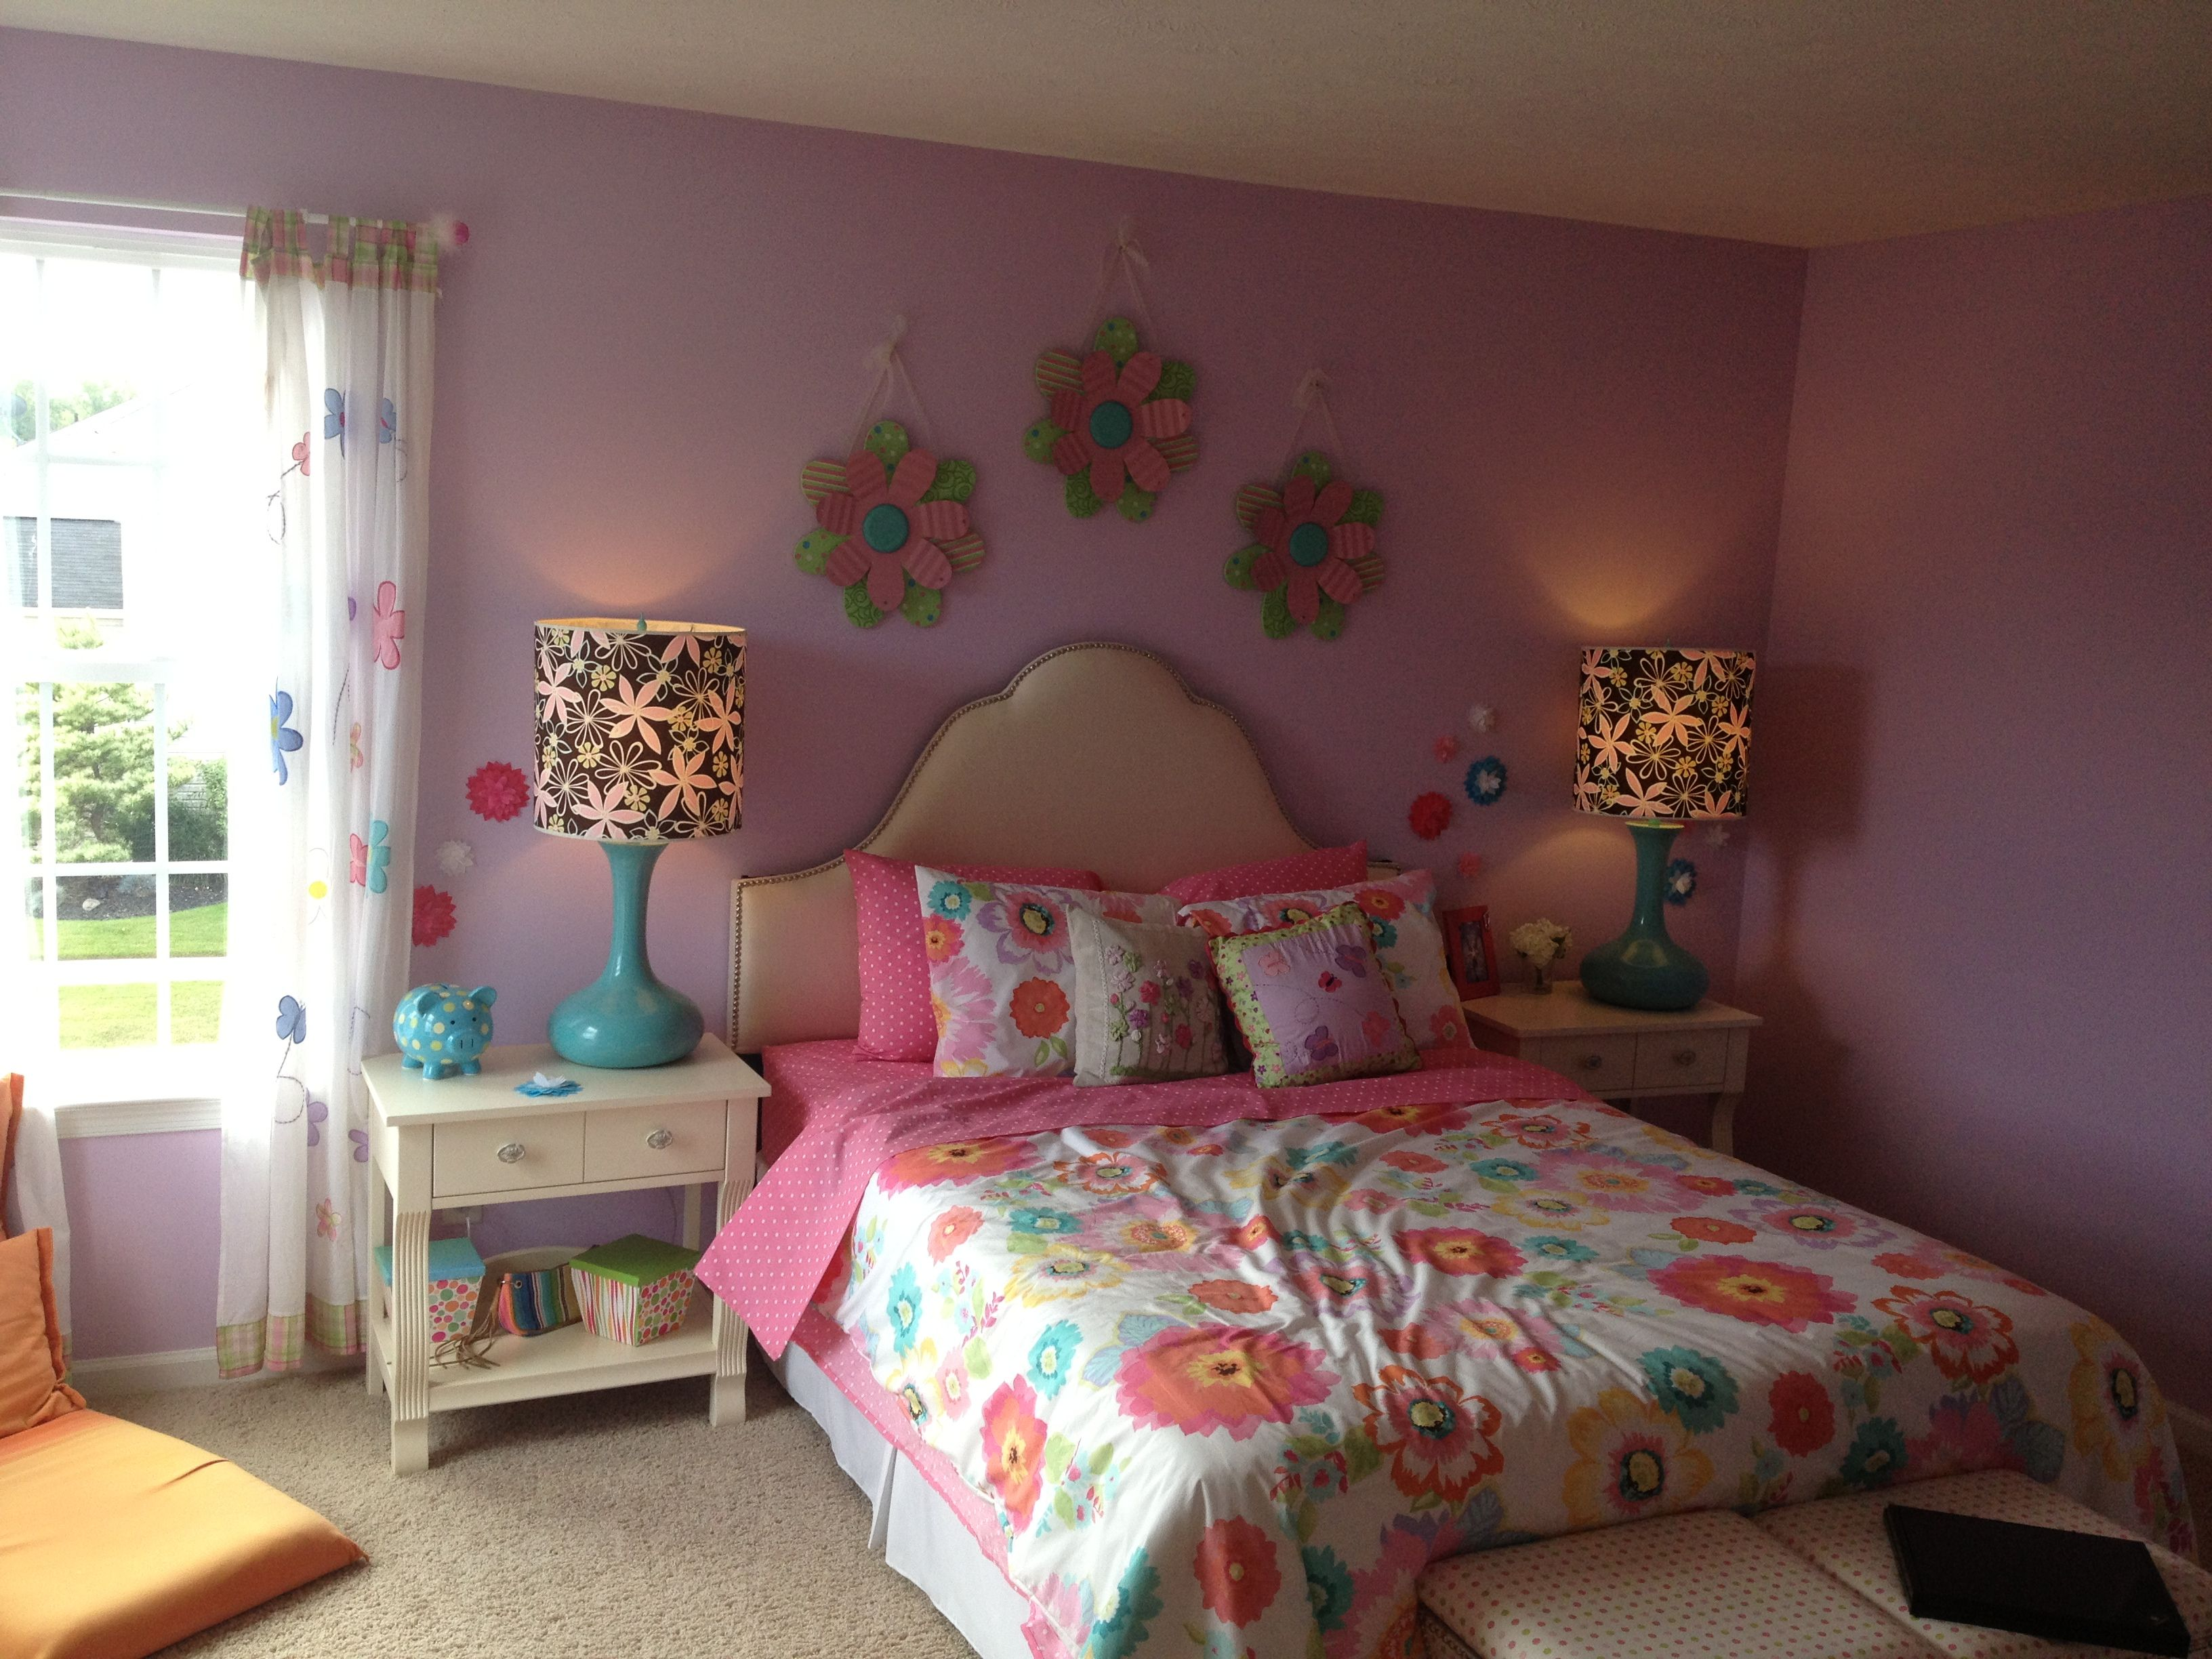 Inspiration for our 10 year old girl 39 s room building our for 4 yr old bedroom ideas